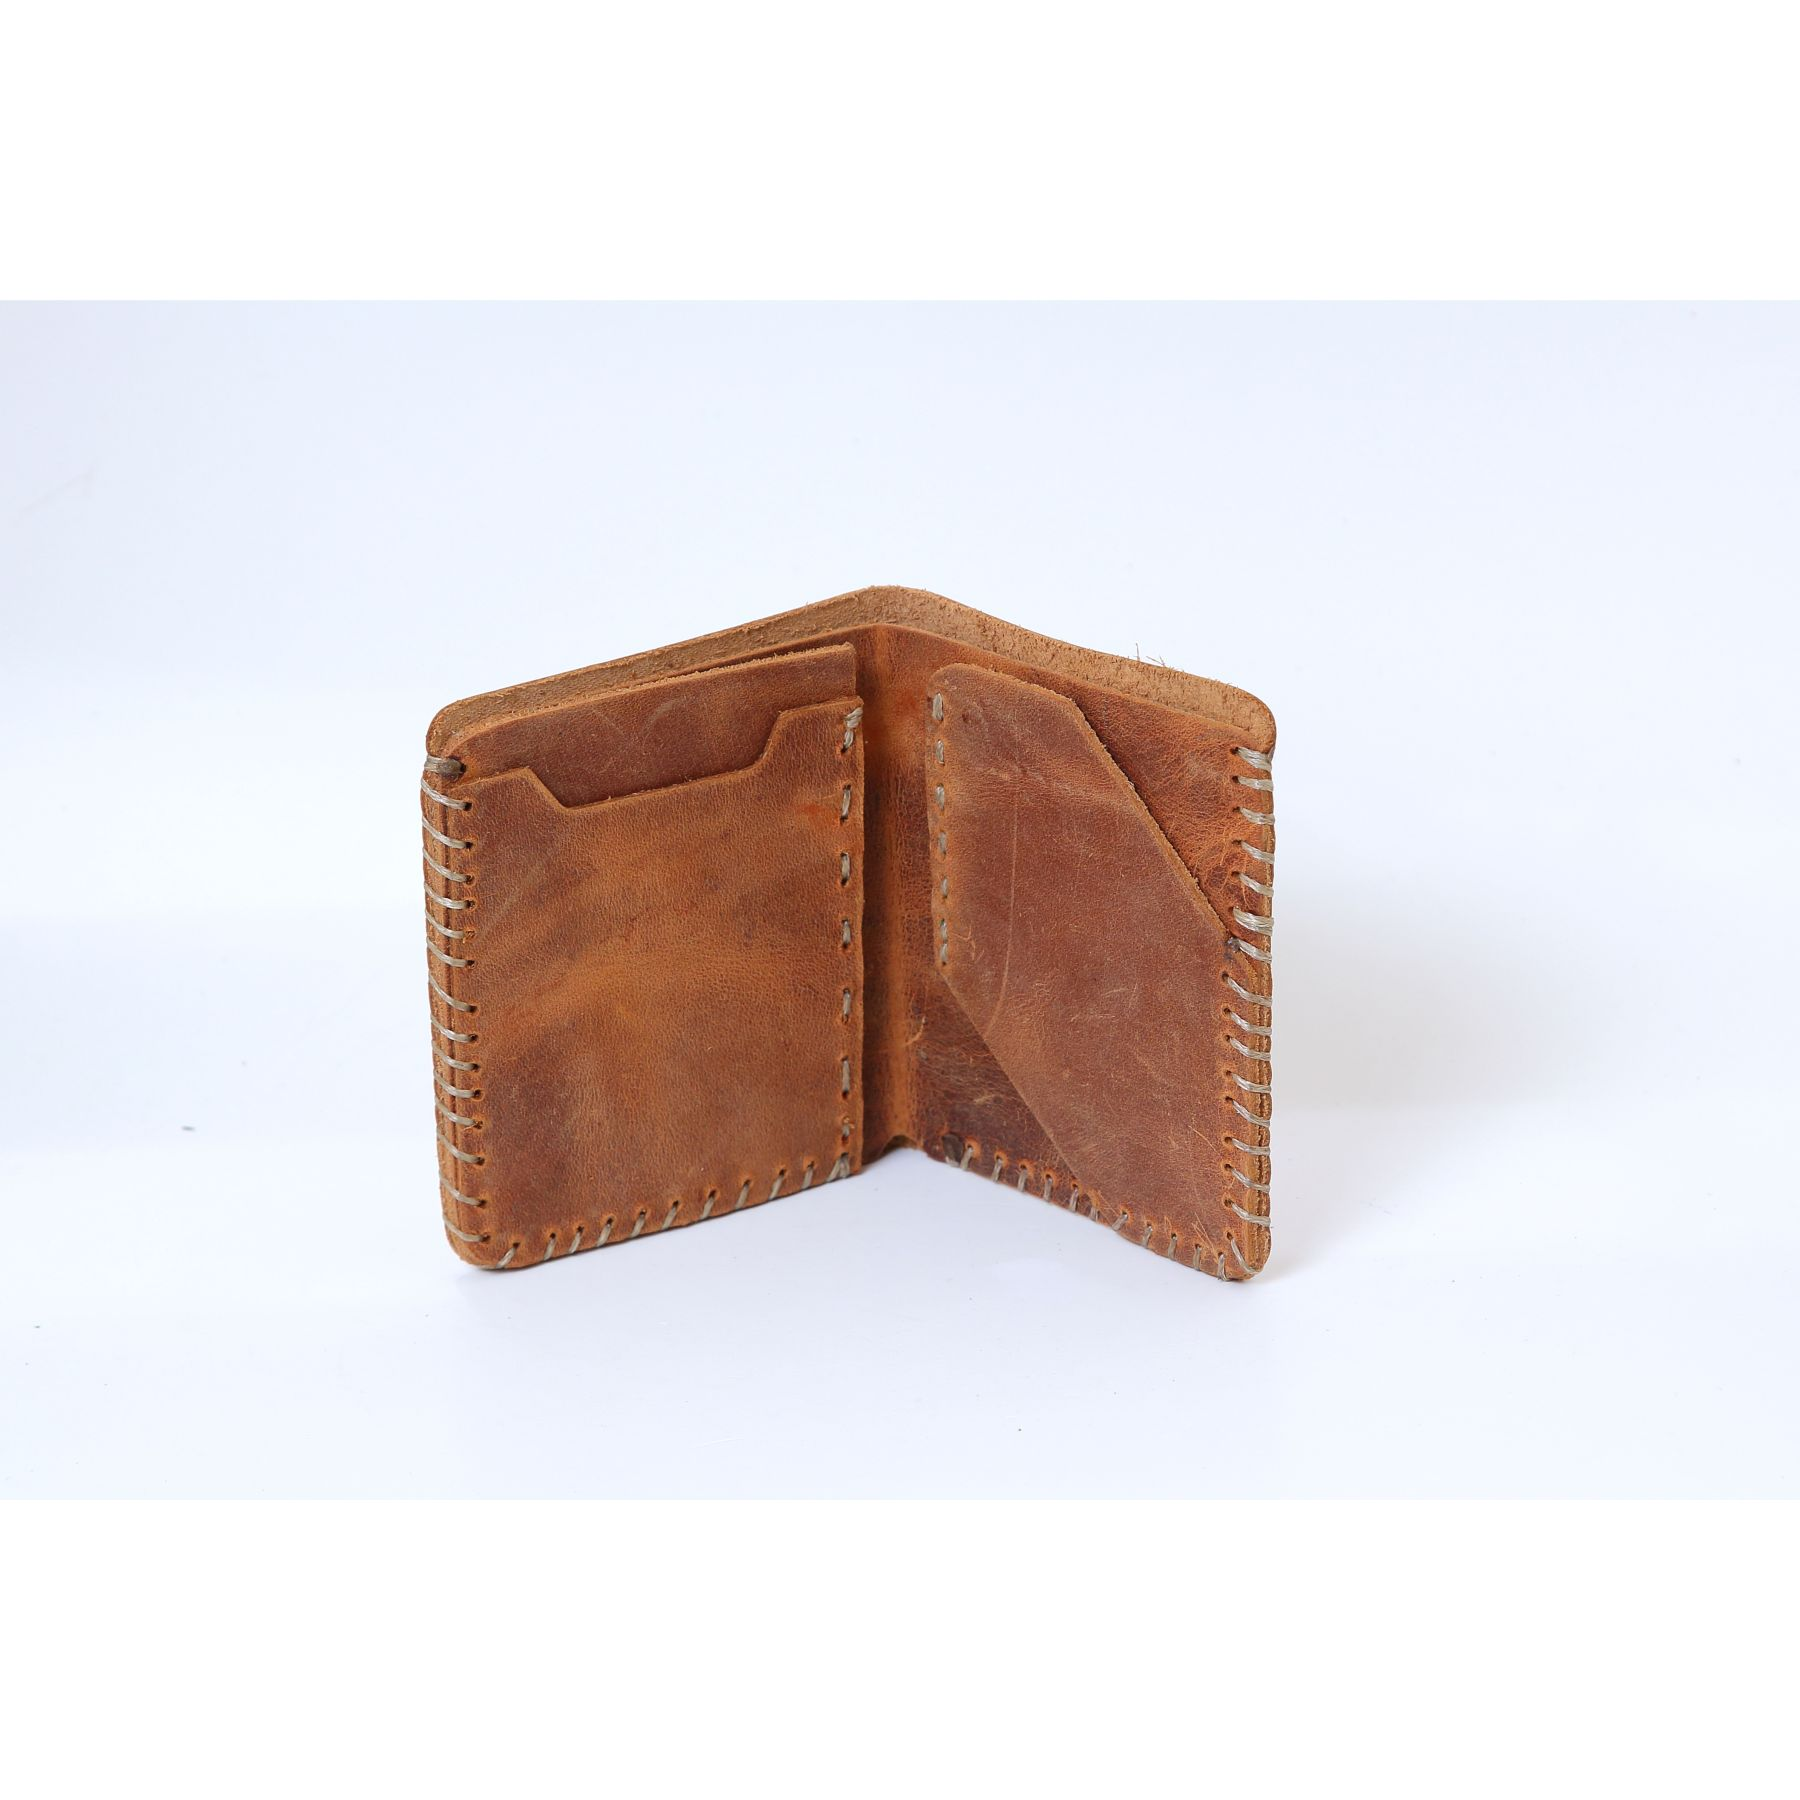 Men's credit card holder wallet bank card Business id card holder leather card organizer Genuine cow leather model 3